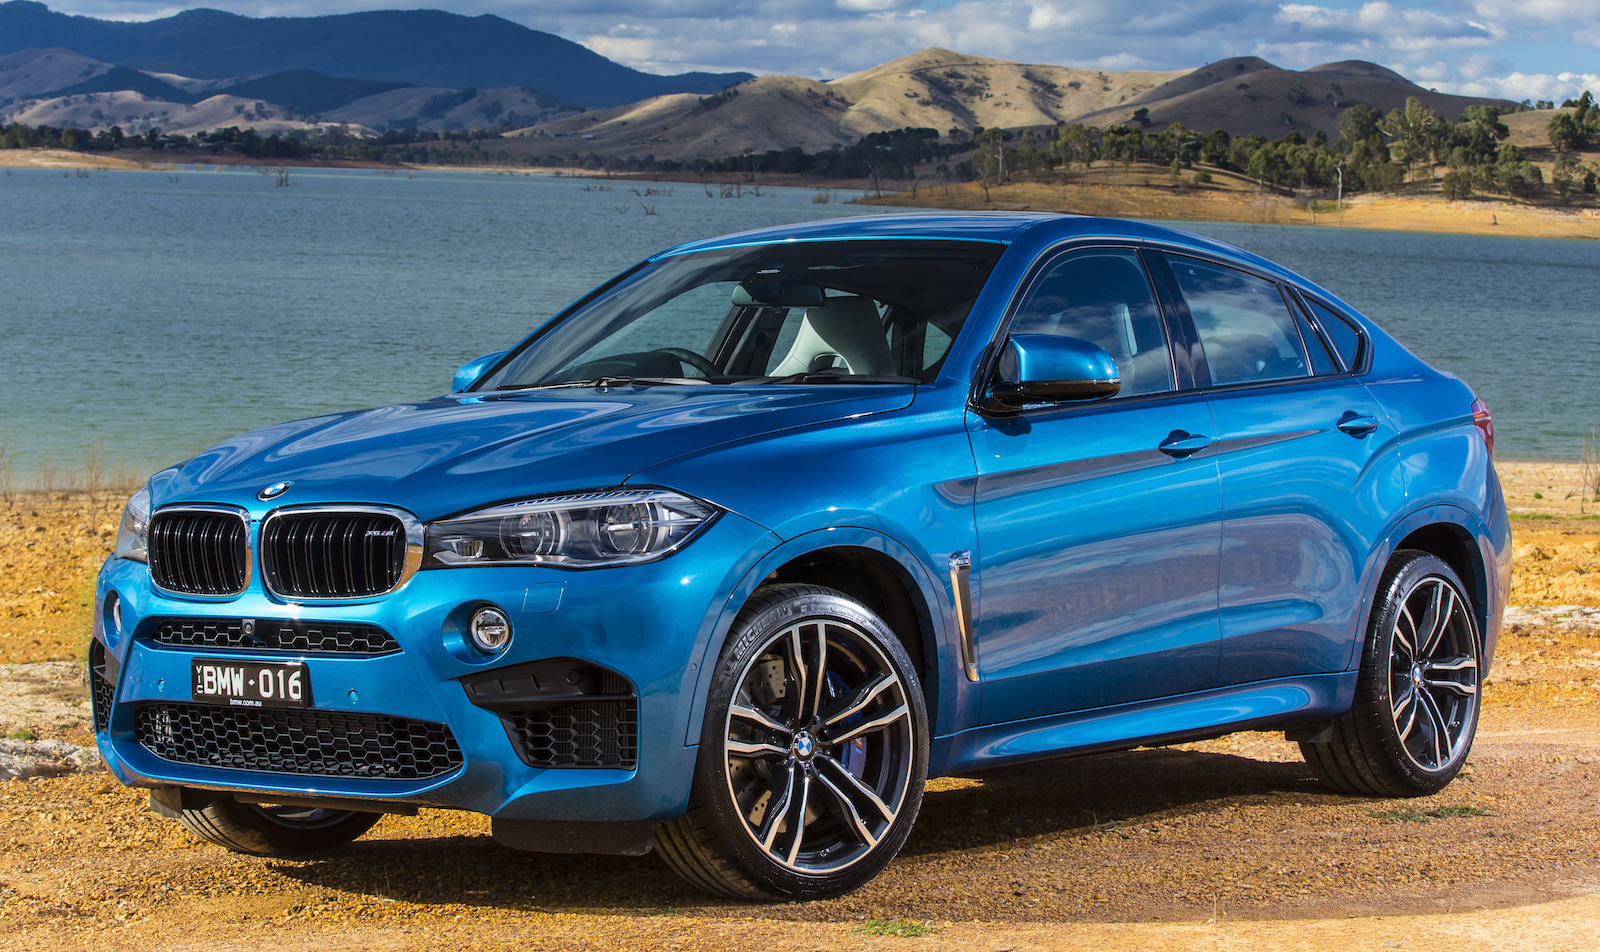 bmw x5 m and x6 m launched pricing specifications and sales photos caradvice. Black Bedroom Furniture Sets. Home Design Ideas